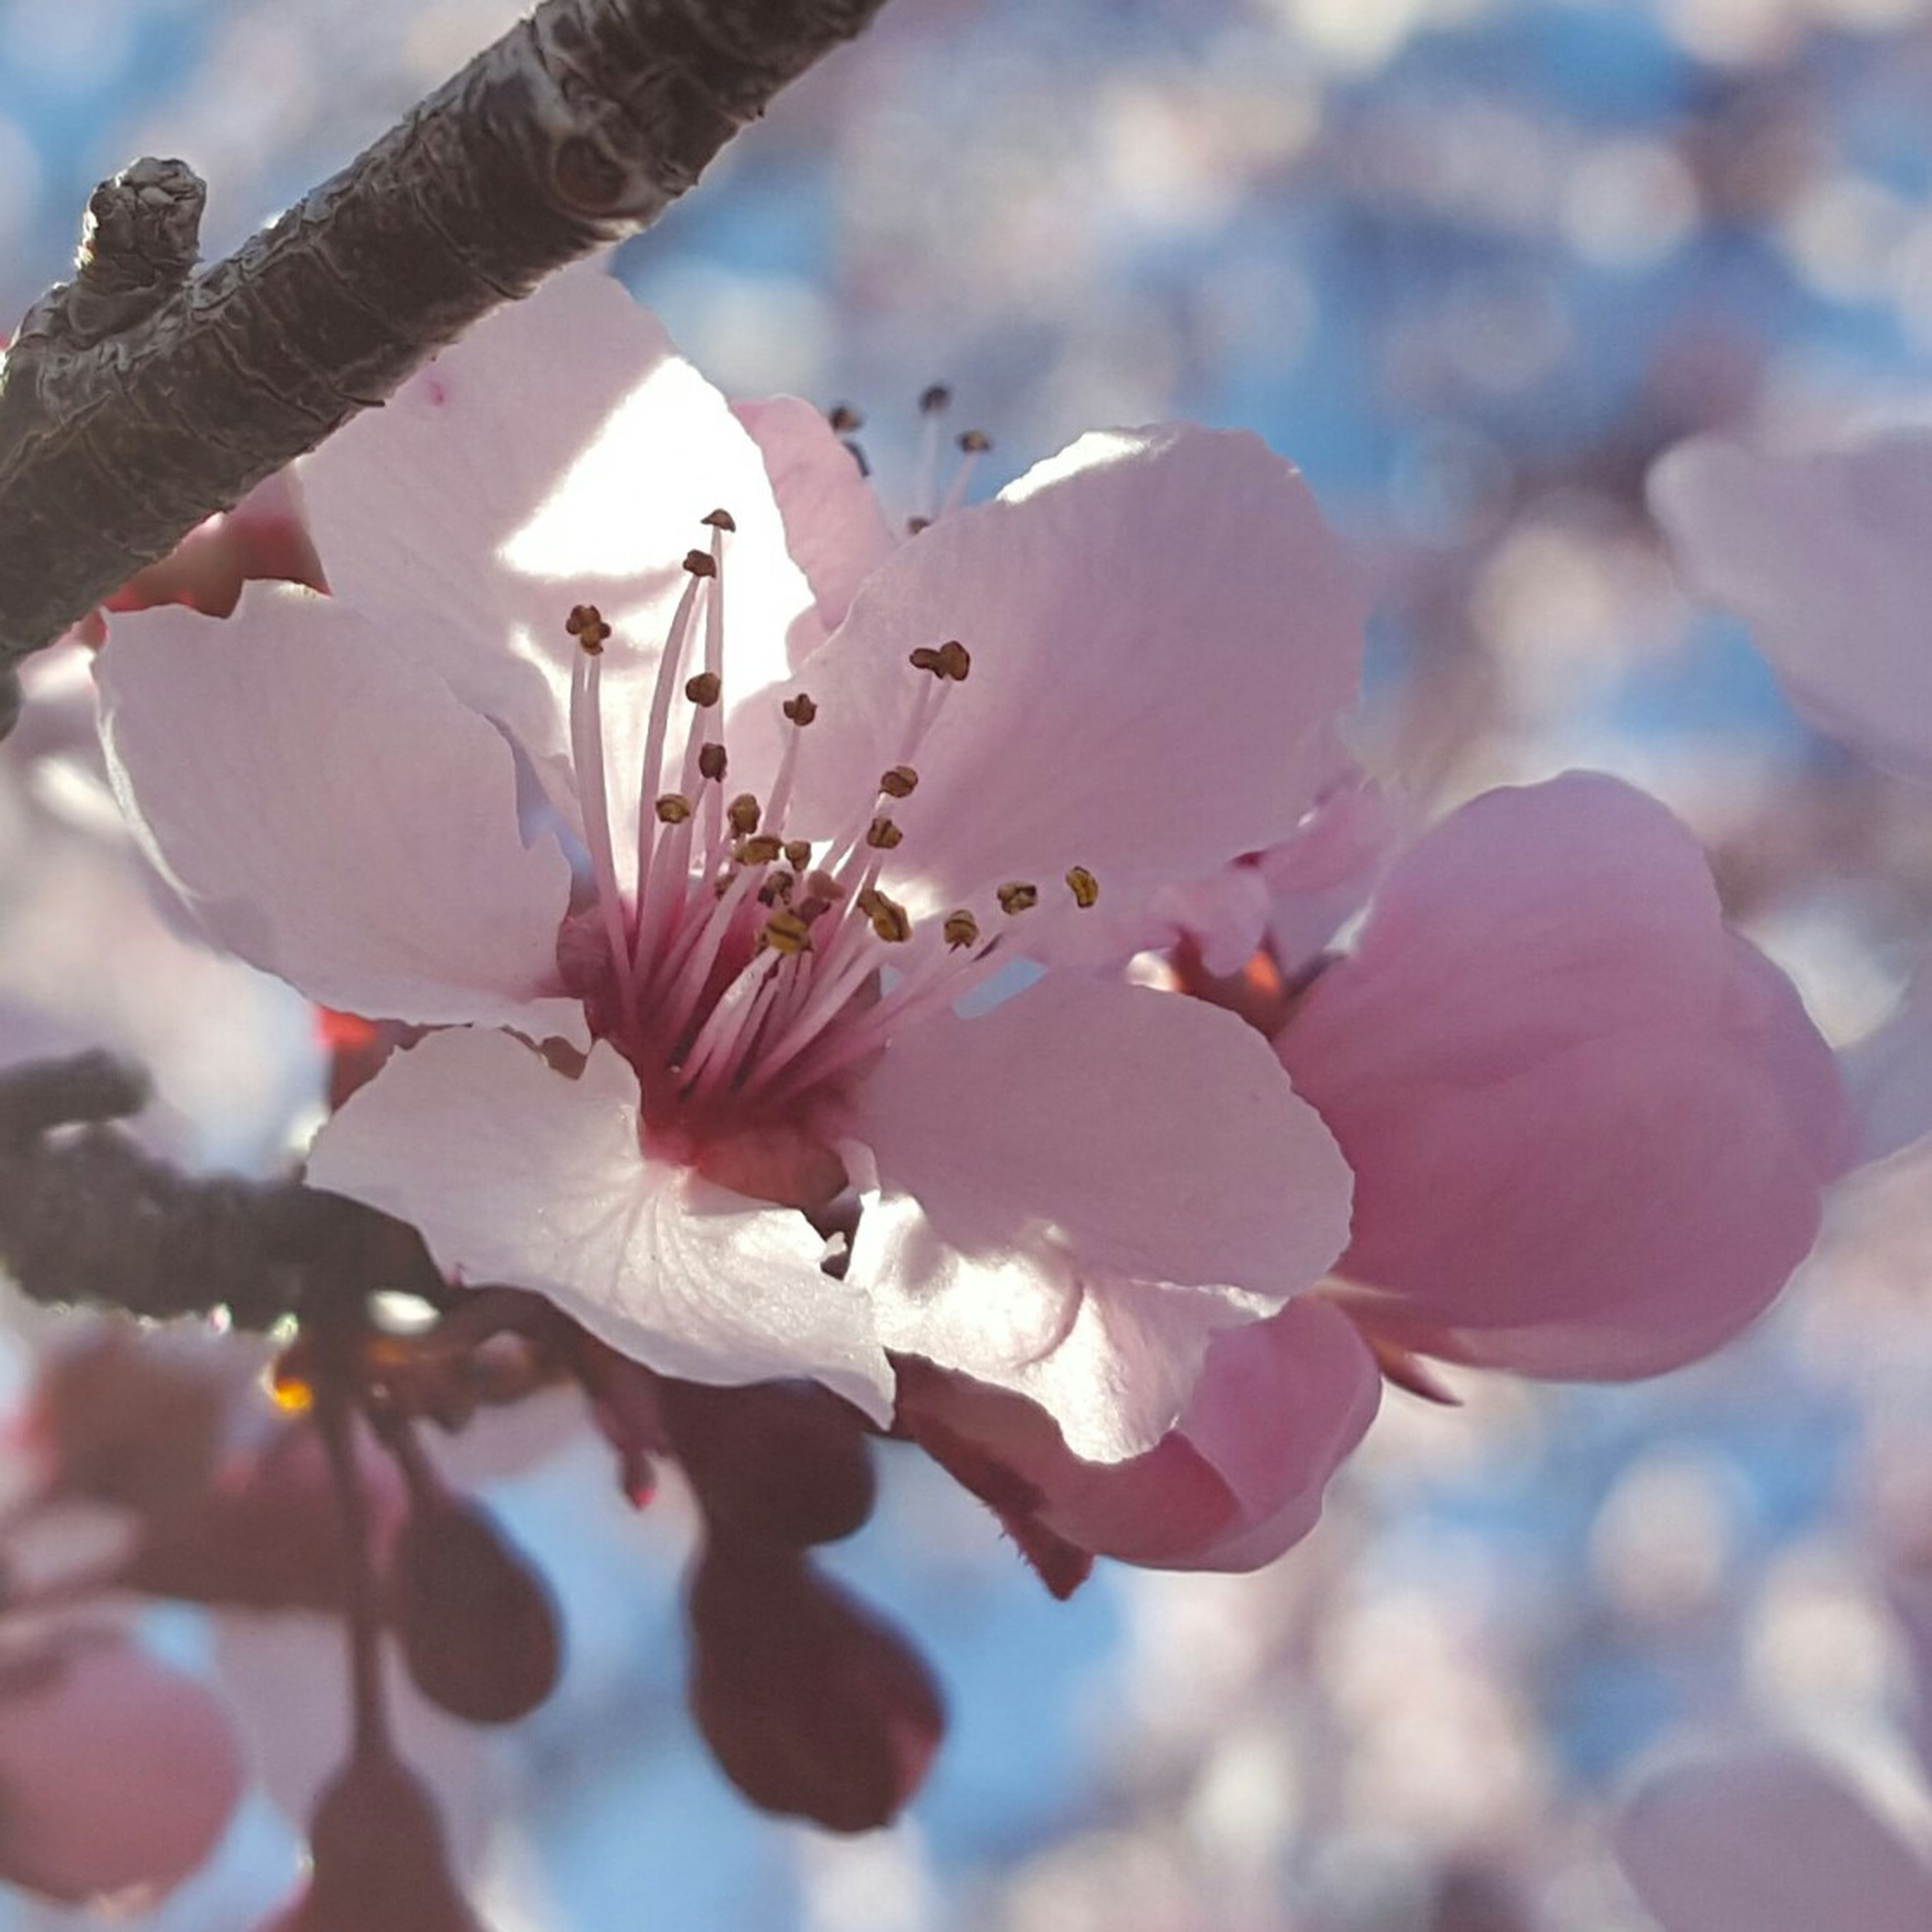 flower, fragility, petal, freshness, flower head, growth, beauty in nature, blooming, pink color, nature, close-up, focus on foreground, in bloom, blossom, cherry blossom, low angle view, tree, pollen, day, sky